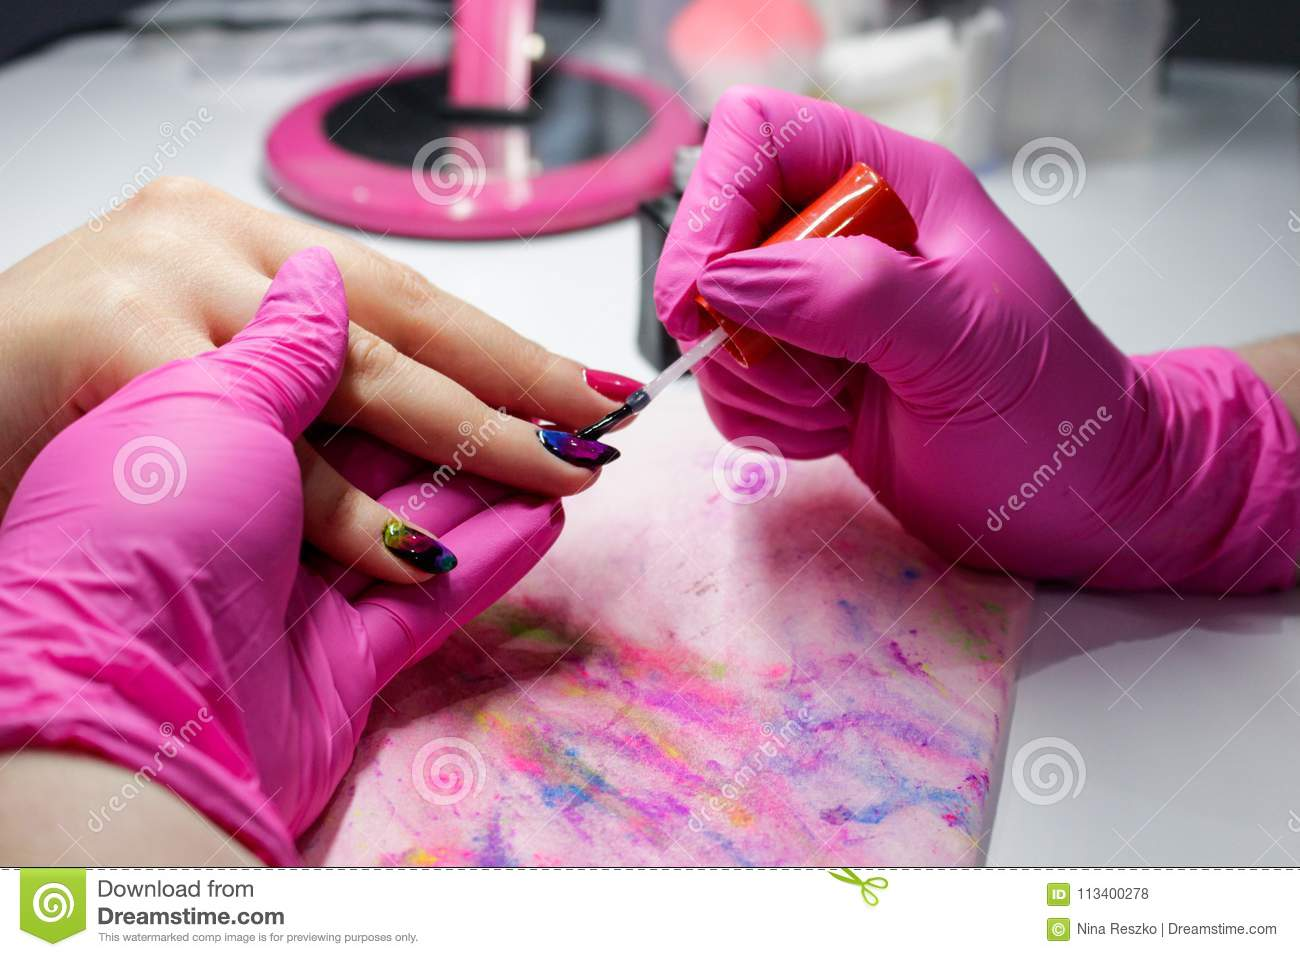 Manicure nail paint, Closeup shot of a woman in a nail salon receiving a manicure by a beautician